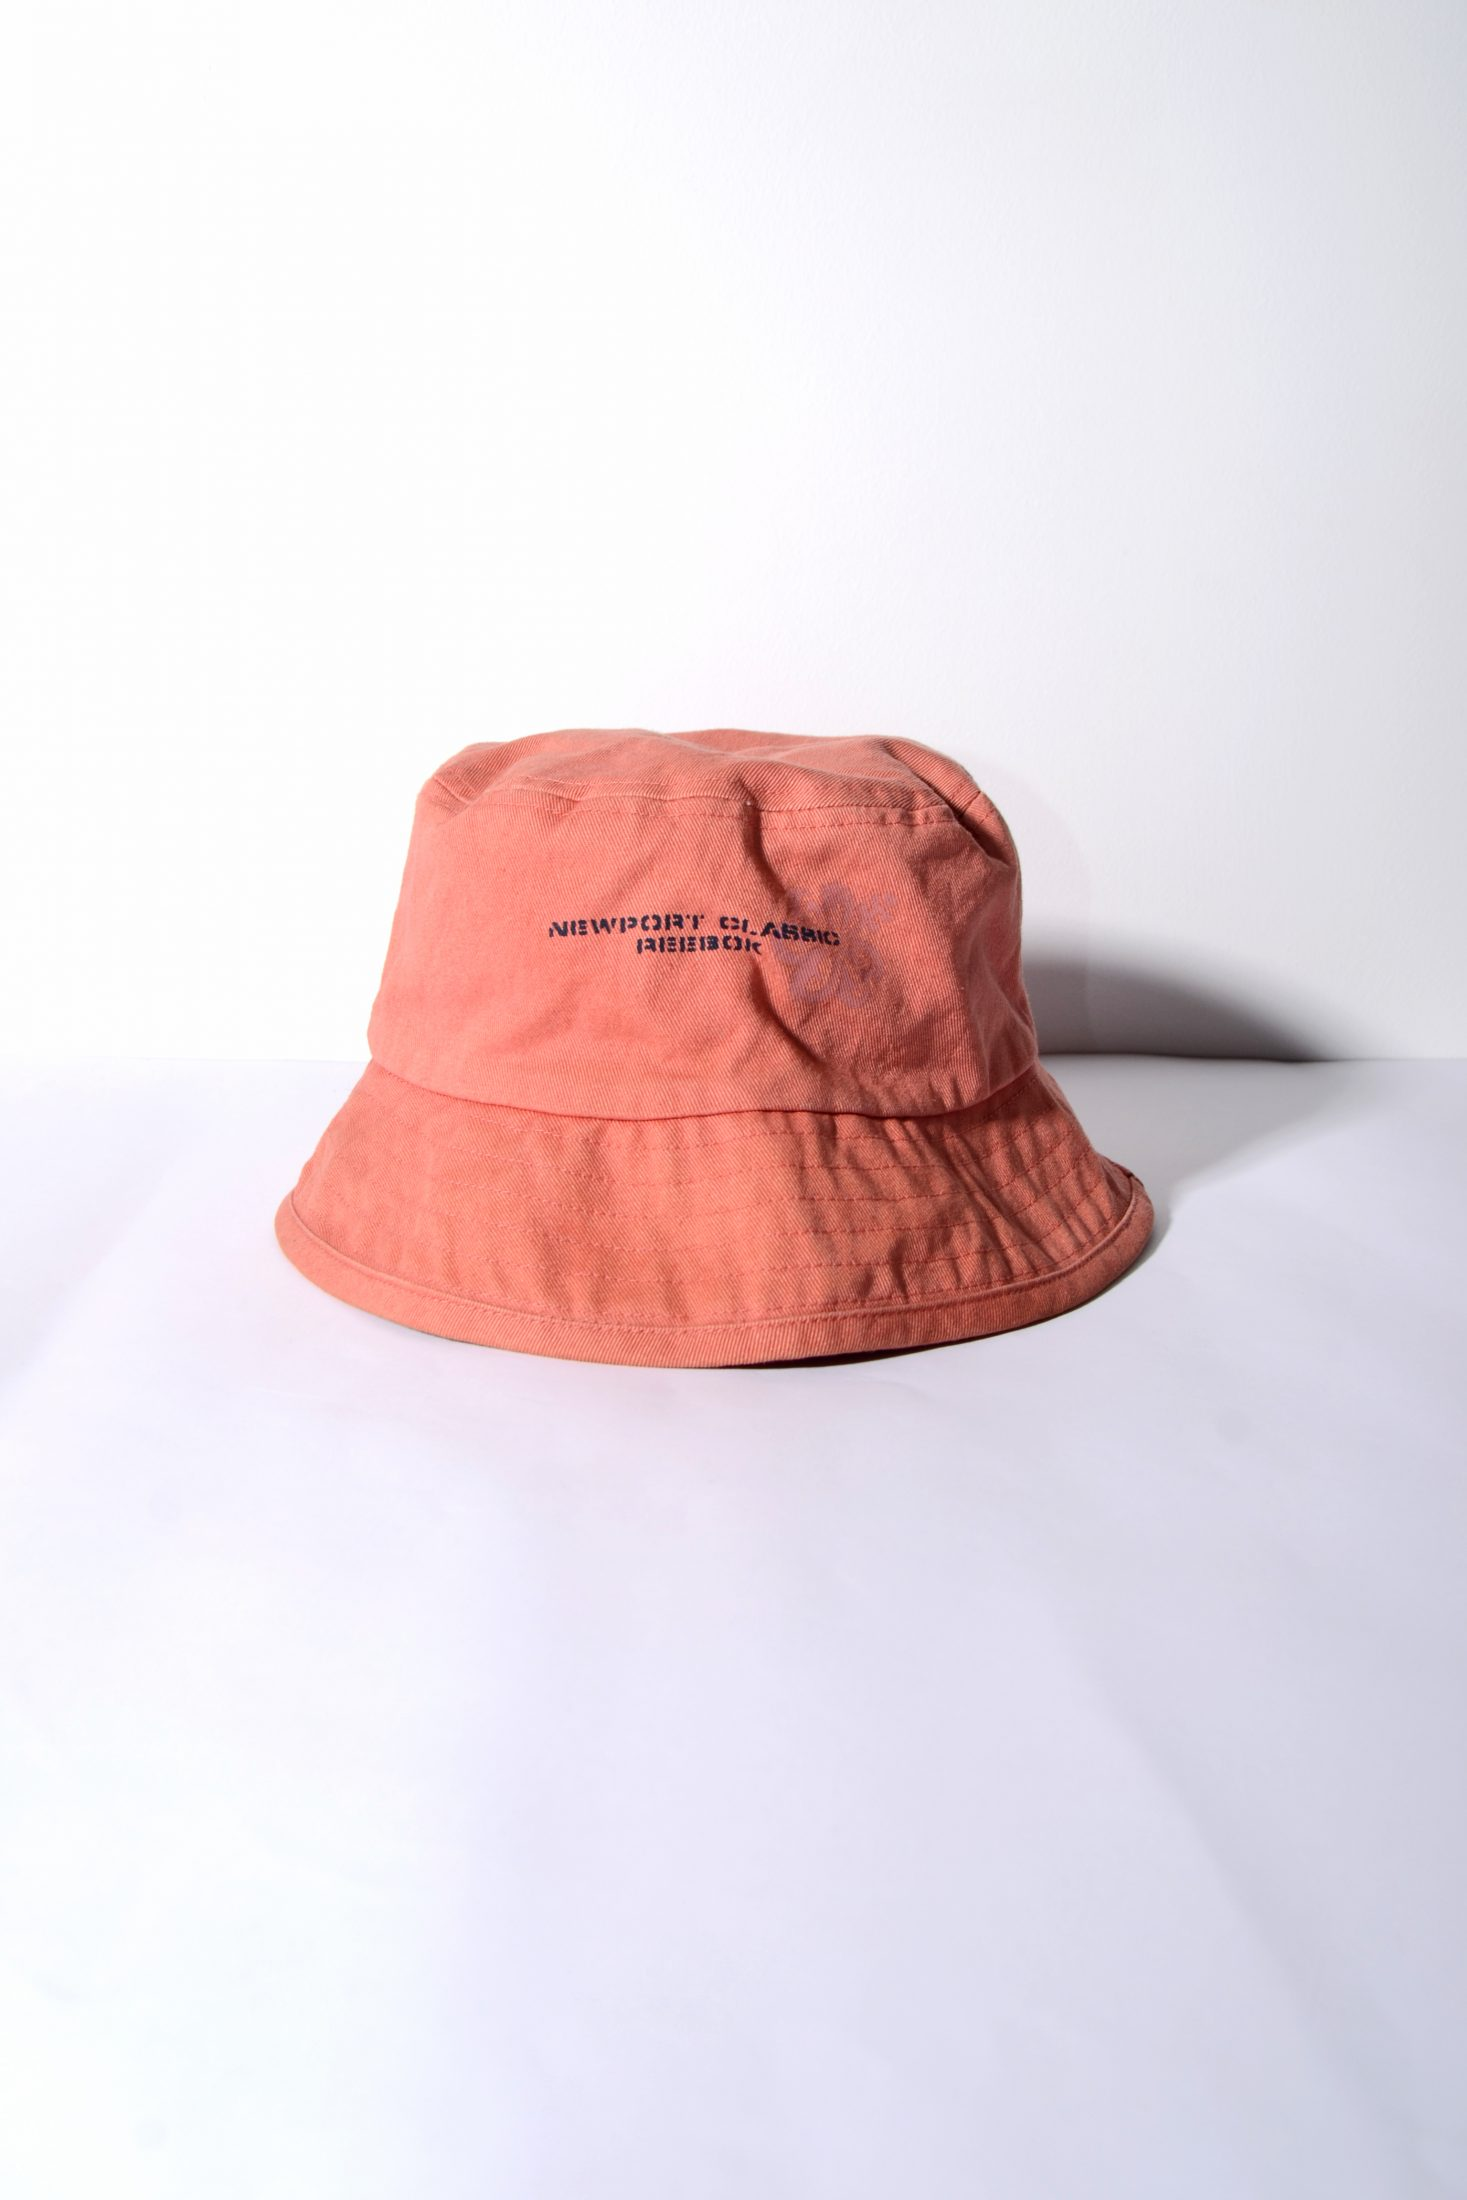 92d3709e Reebok Cotton Bucket Pink Hat | Vintage clothing online store in Europe